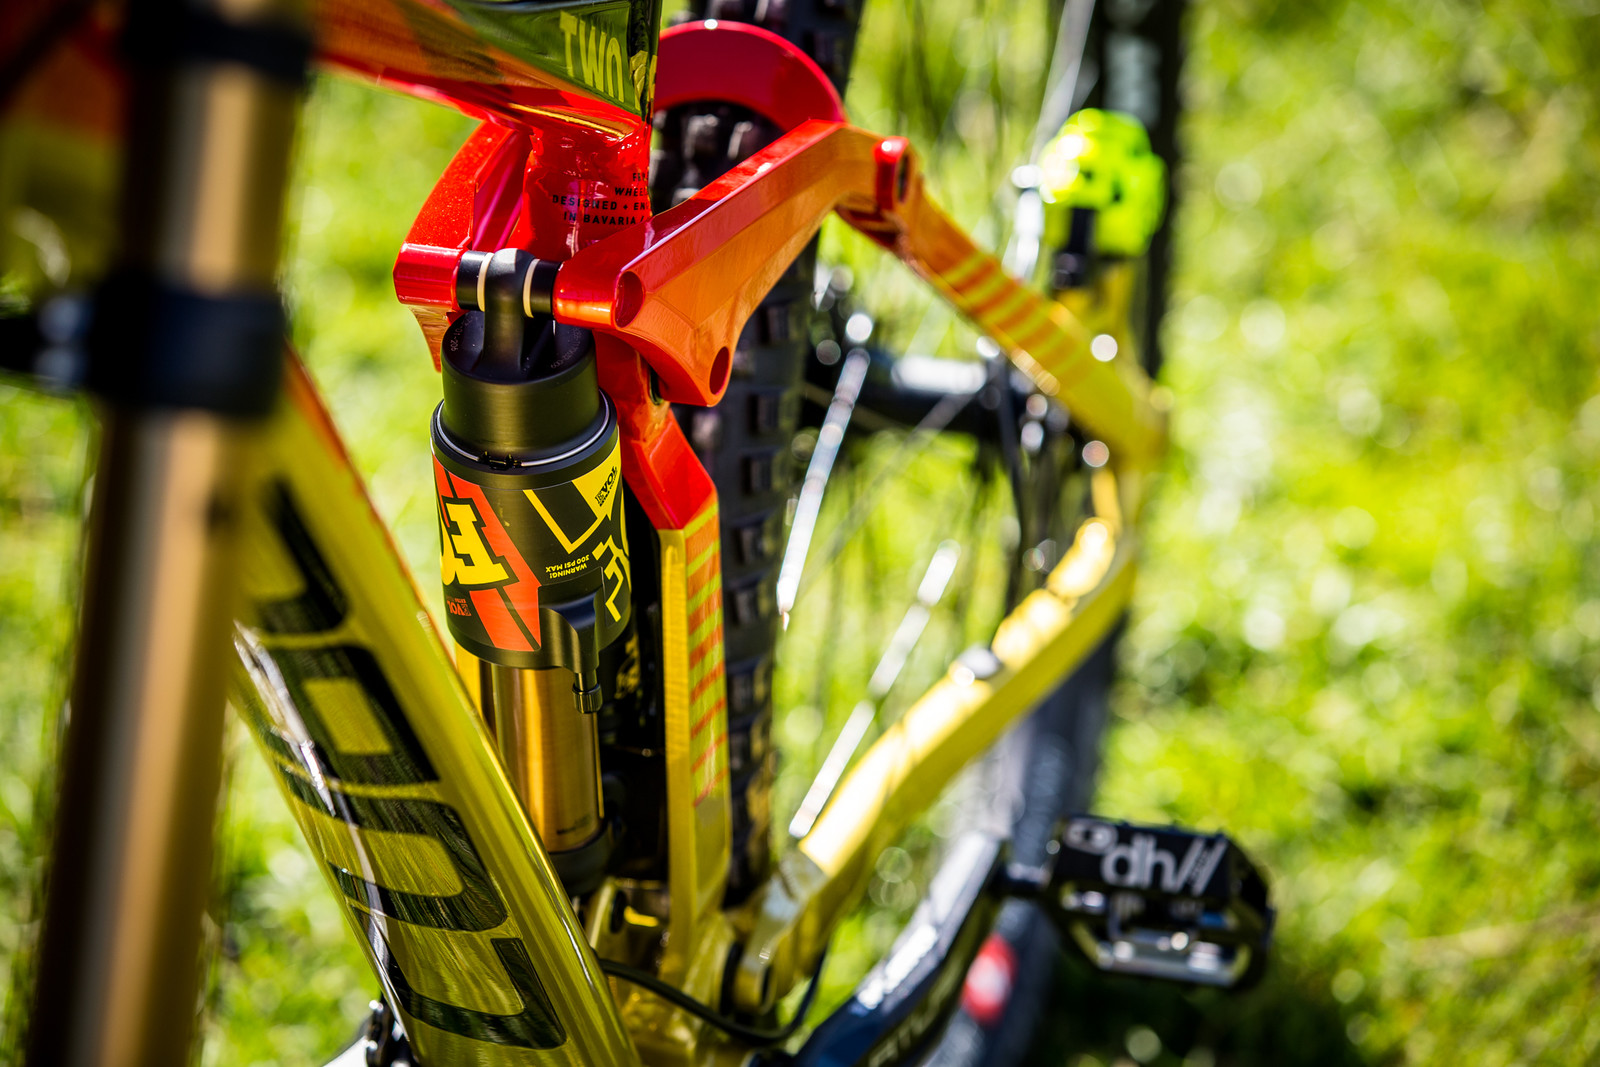 Poppin' - WORLD CHAMPS BIKES - Matt Walker and Max Hartenstern's Cubes - Mountain Biking Pictures - Vital MTB